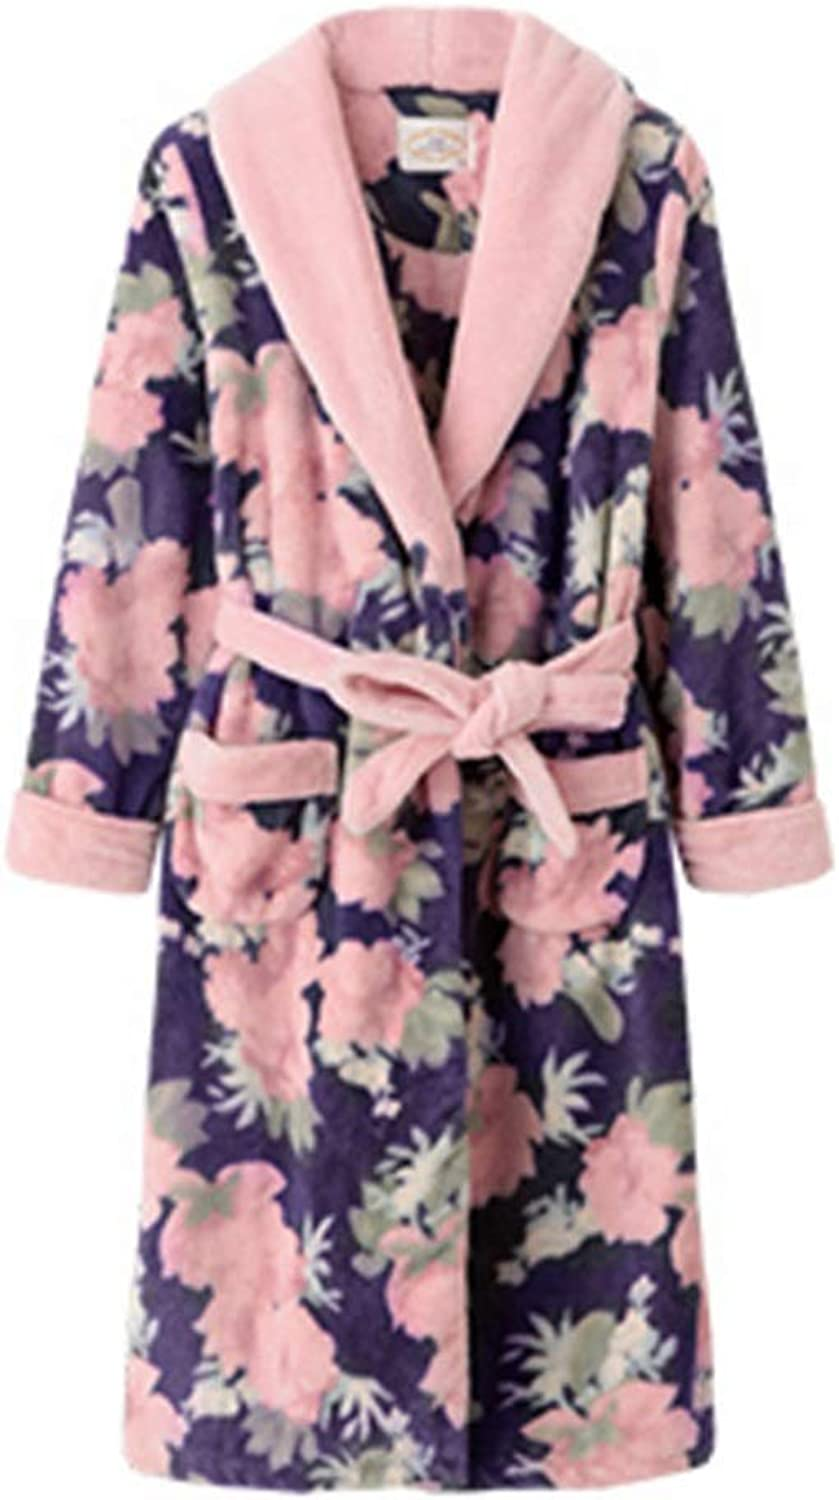 NAN Liang 100% Cotton bathrobe, Nightgown Pajamas, Ladies Autumn and Winter LongSleeved Pajamas Soft (Size   M)